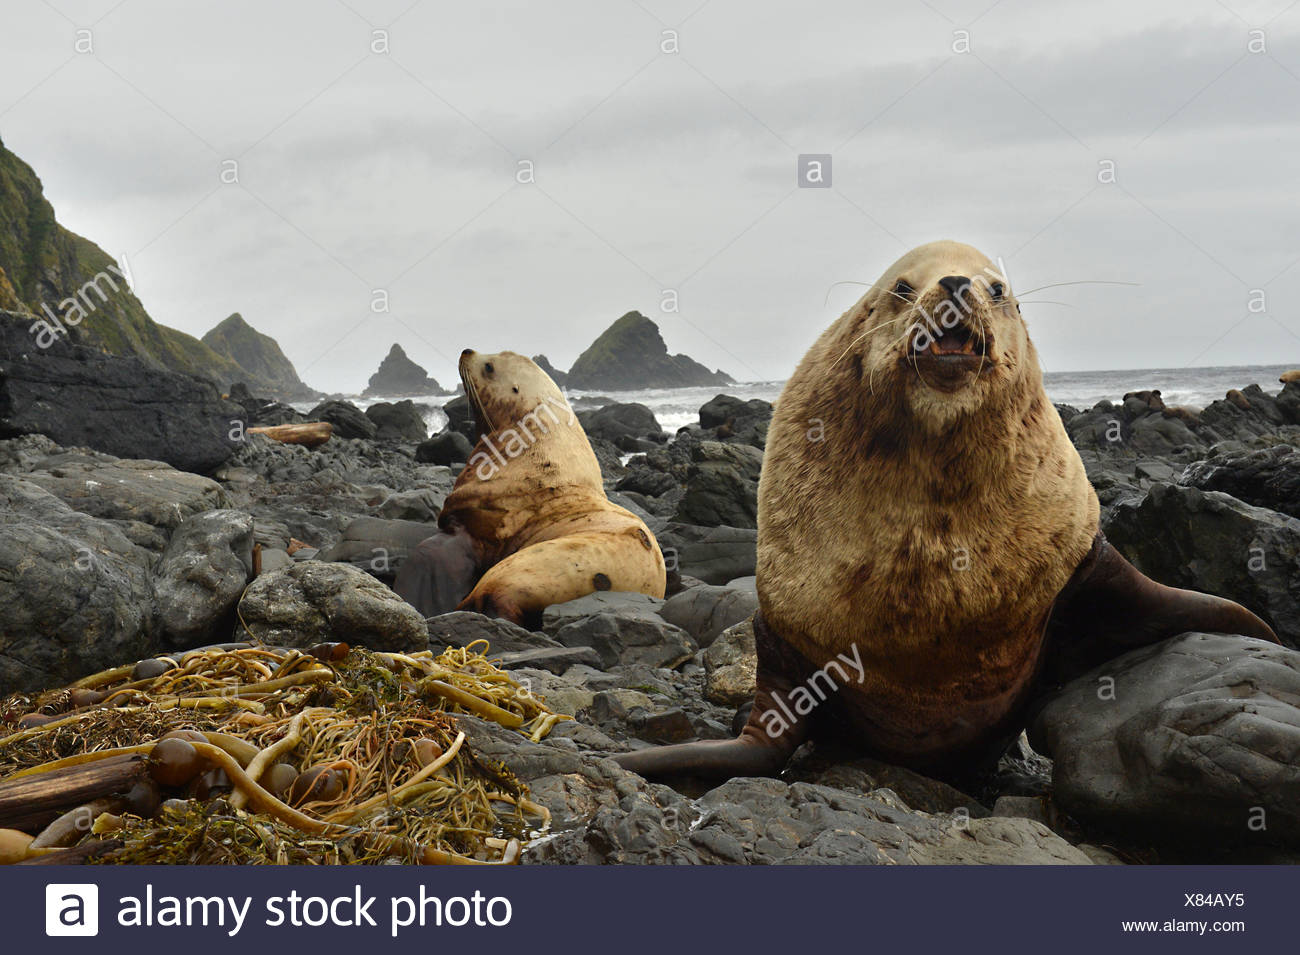 Two Steller sea lions, Eumetopias jubatus, lying on a rocky shore. - Stock Image